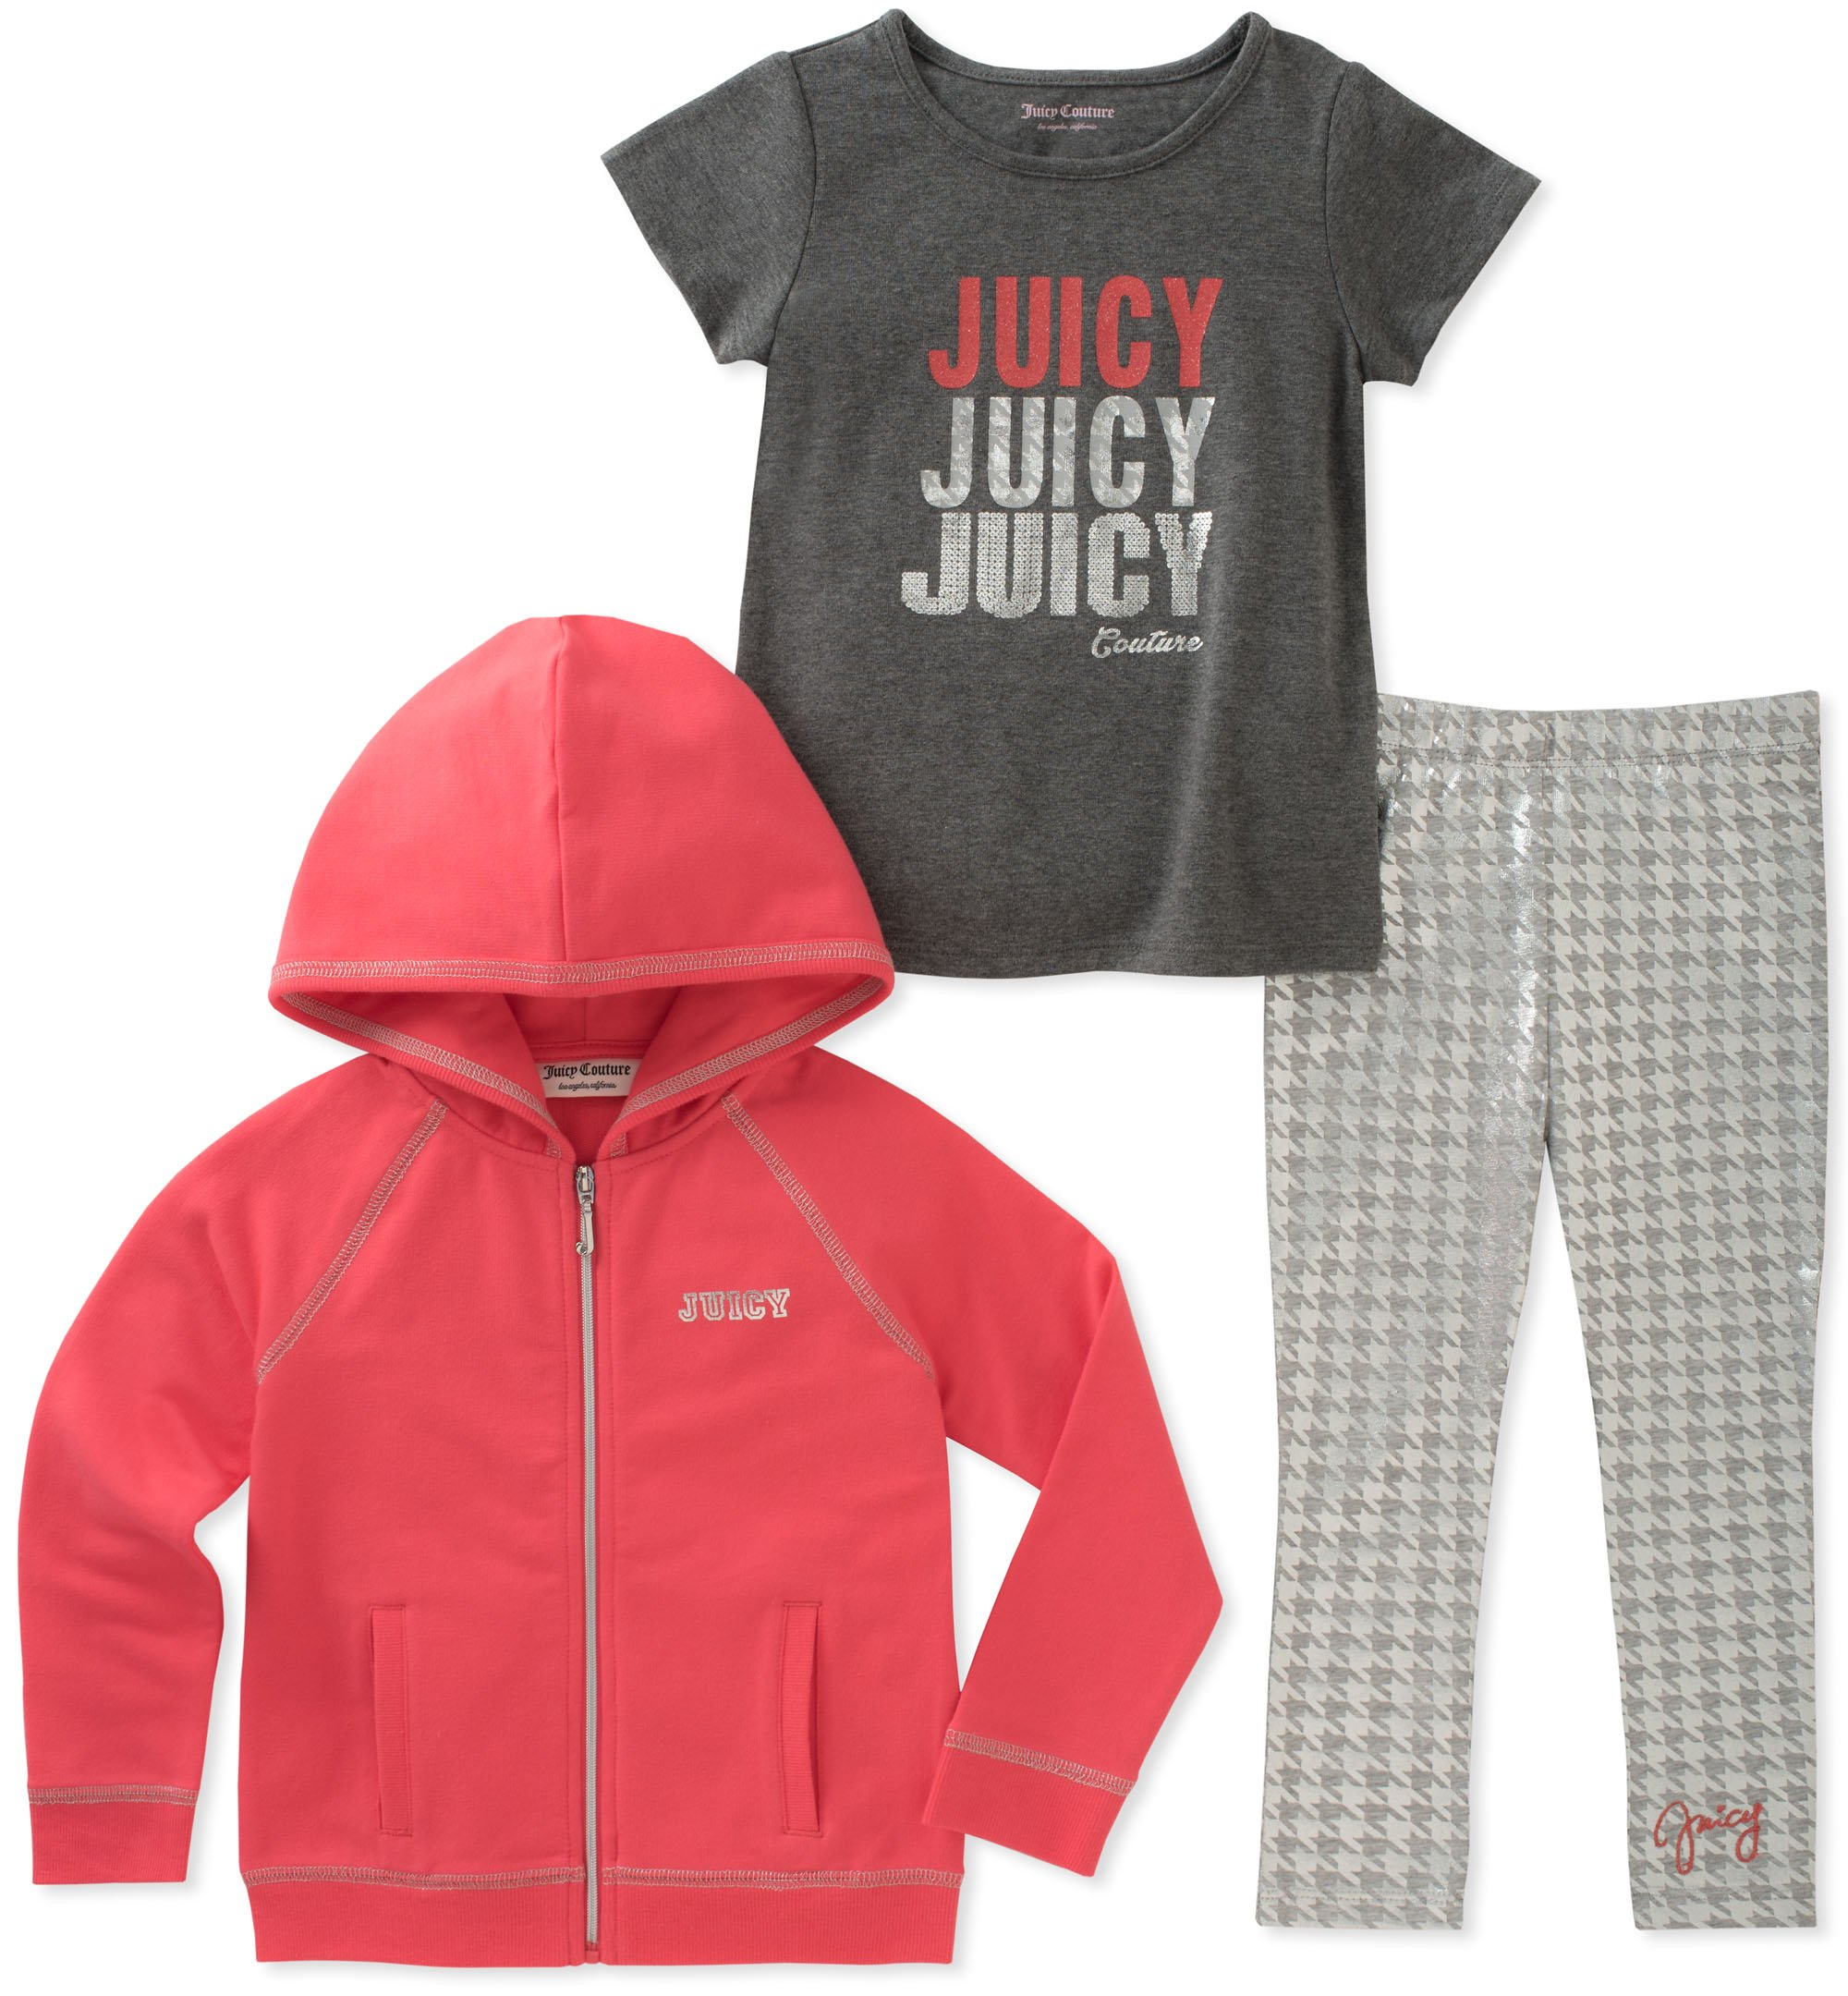 Juicy Couture Girls' Toddler 3 Pieces Jacket Set, Gray/Coral, 4T